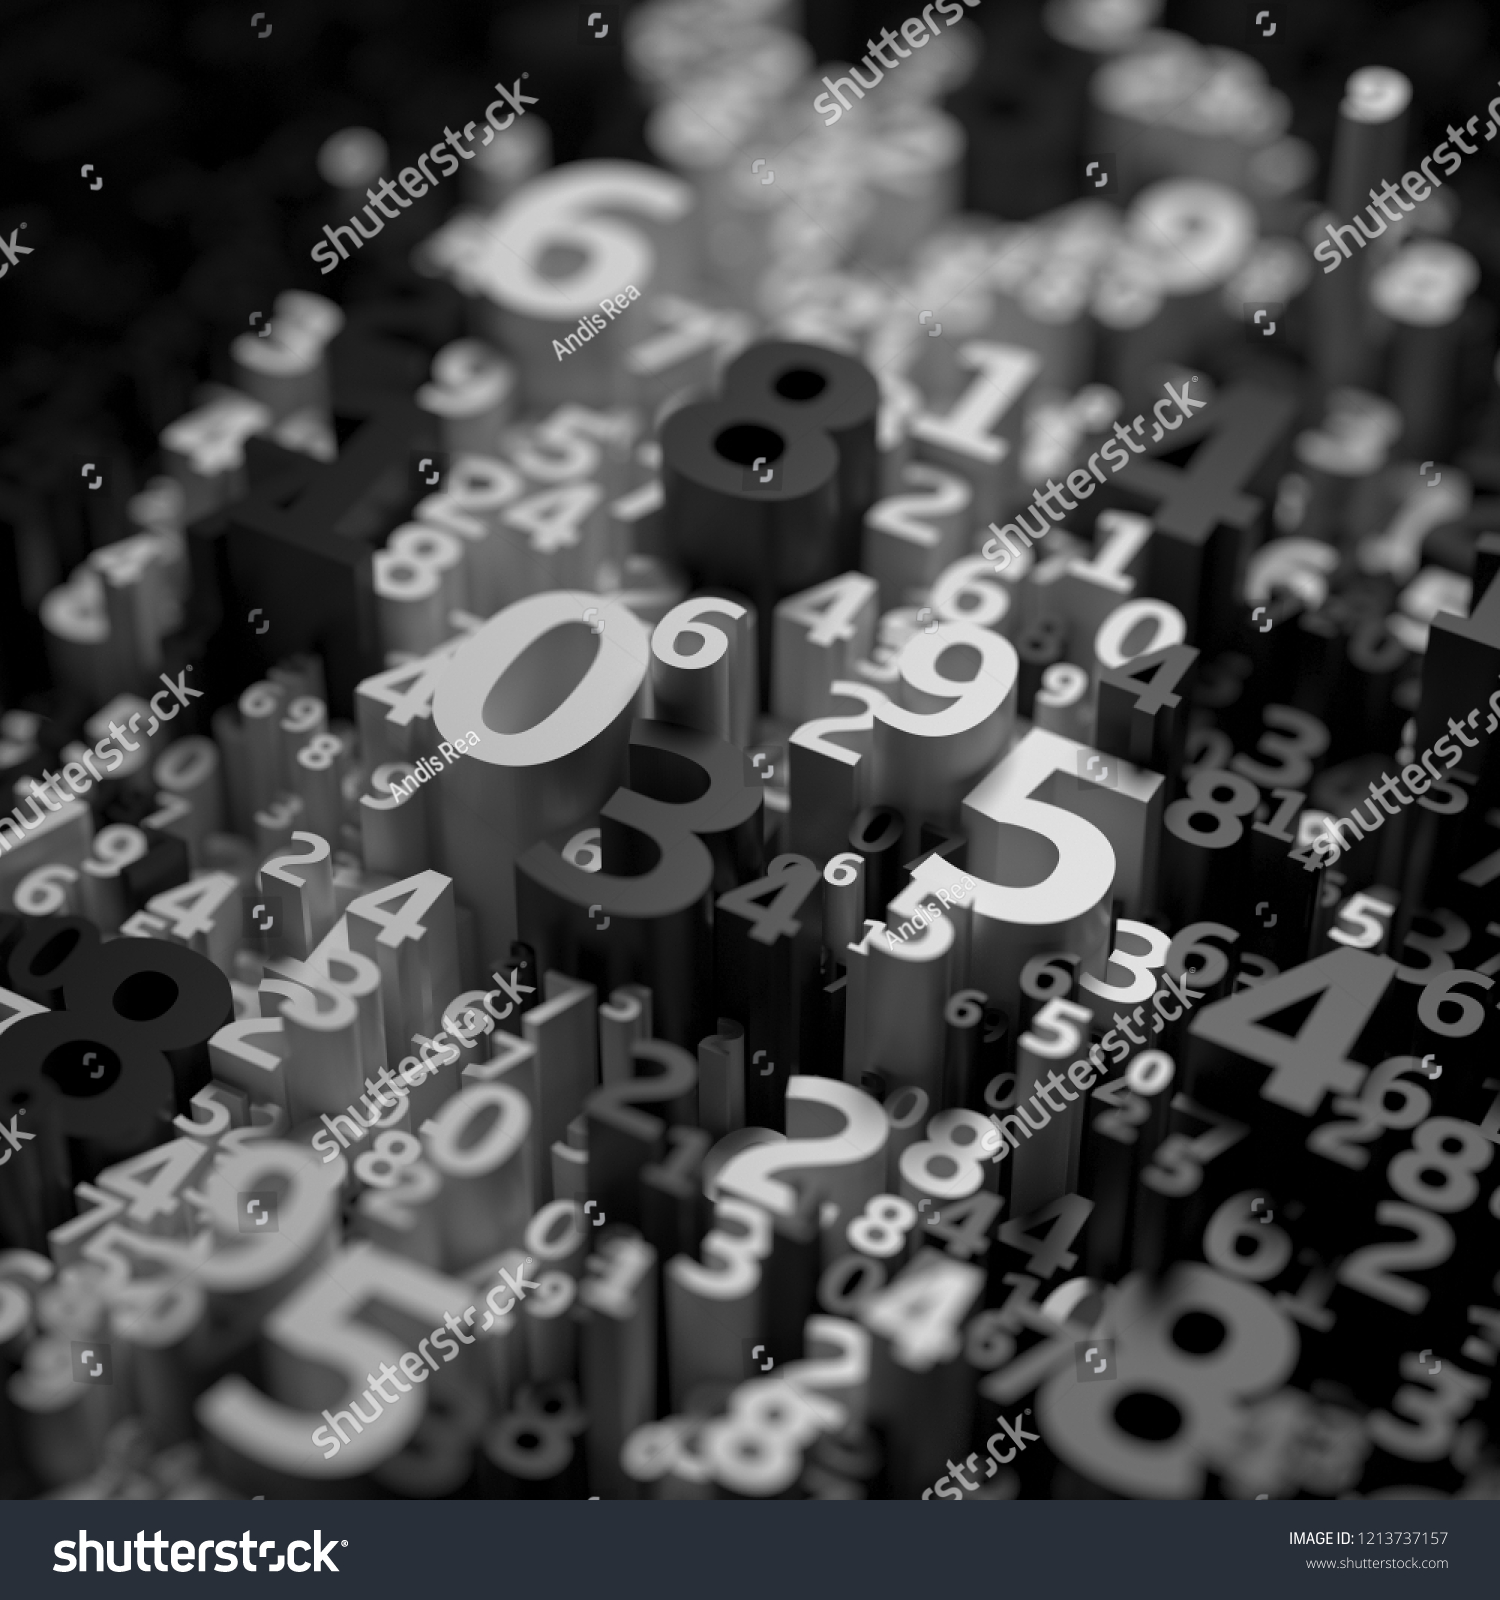 Abstract 3 D Numbers Background Computer Science Stock Illustration Circuitry Of An Electronic Calculator Royalty Free Photography 1213737157 Shutterstock